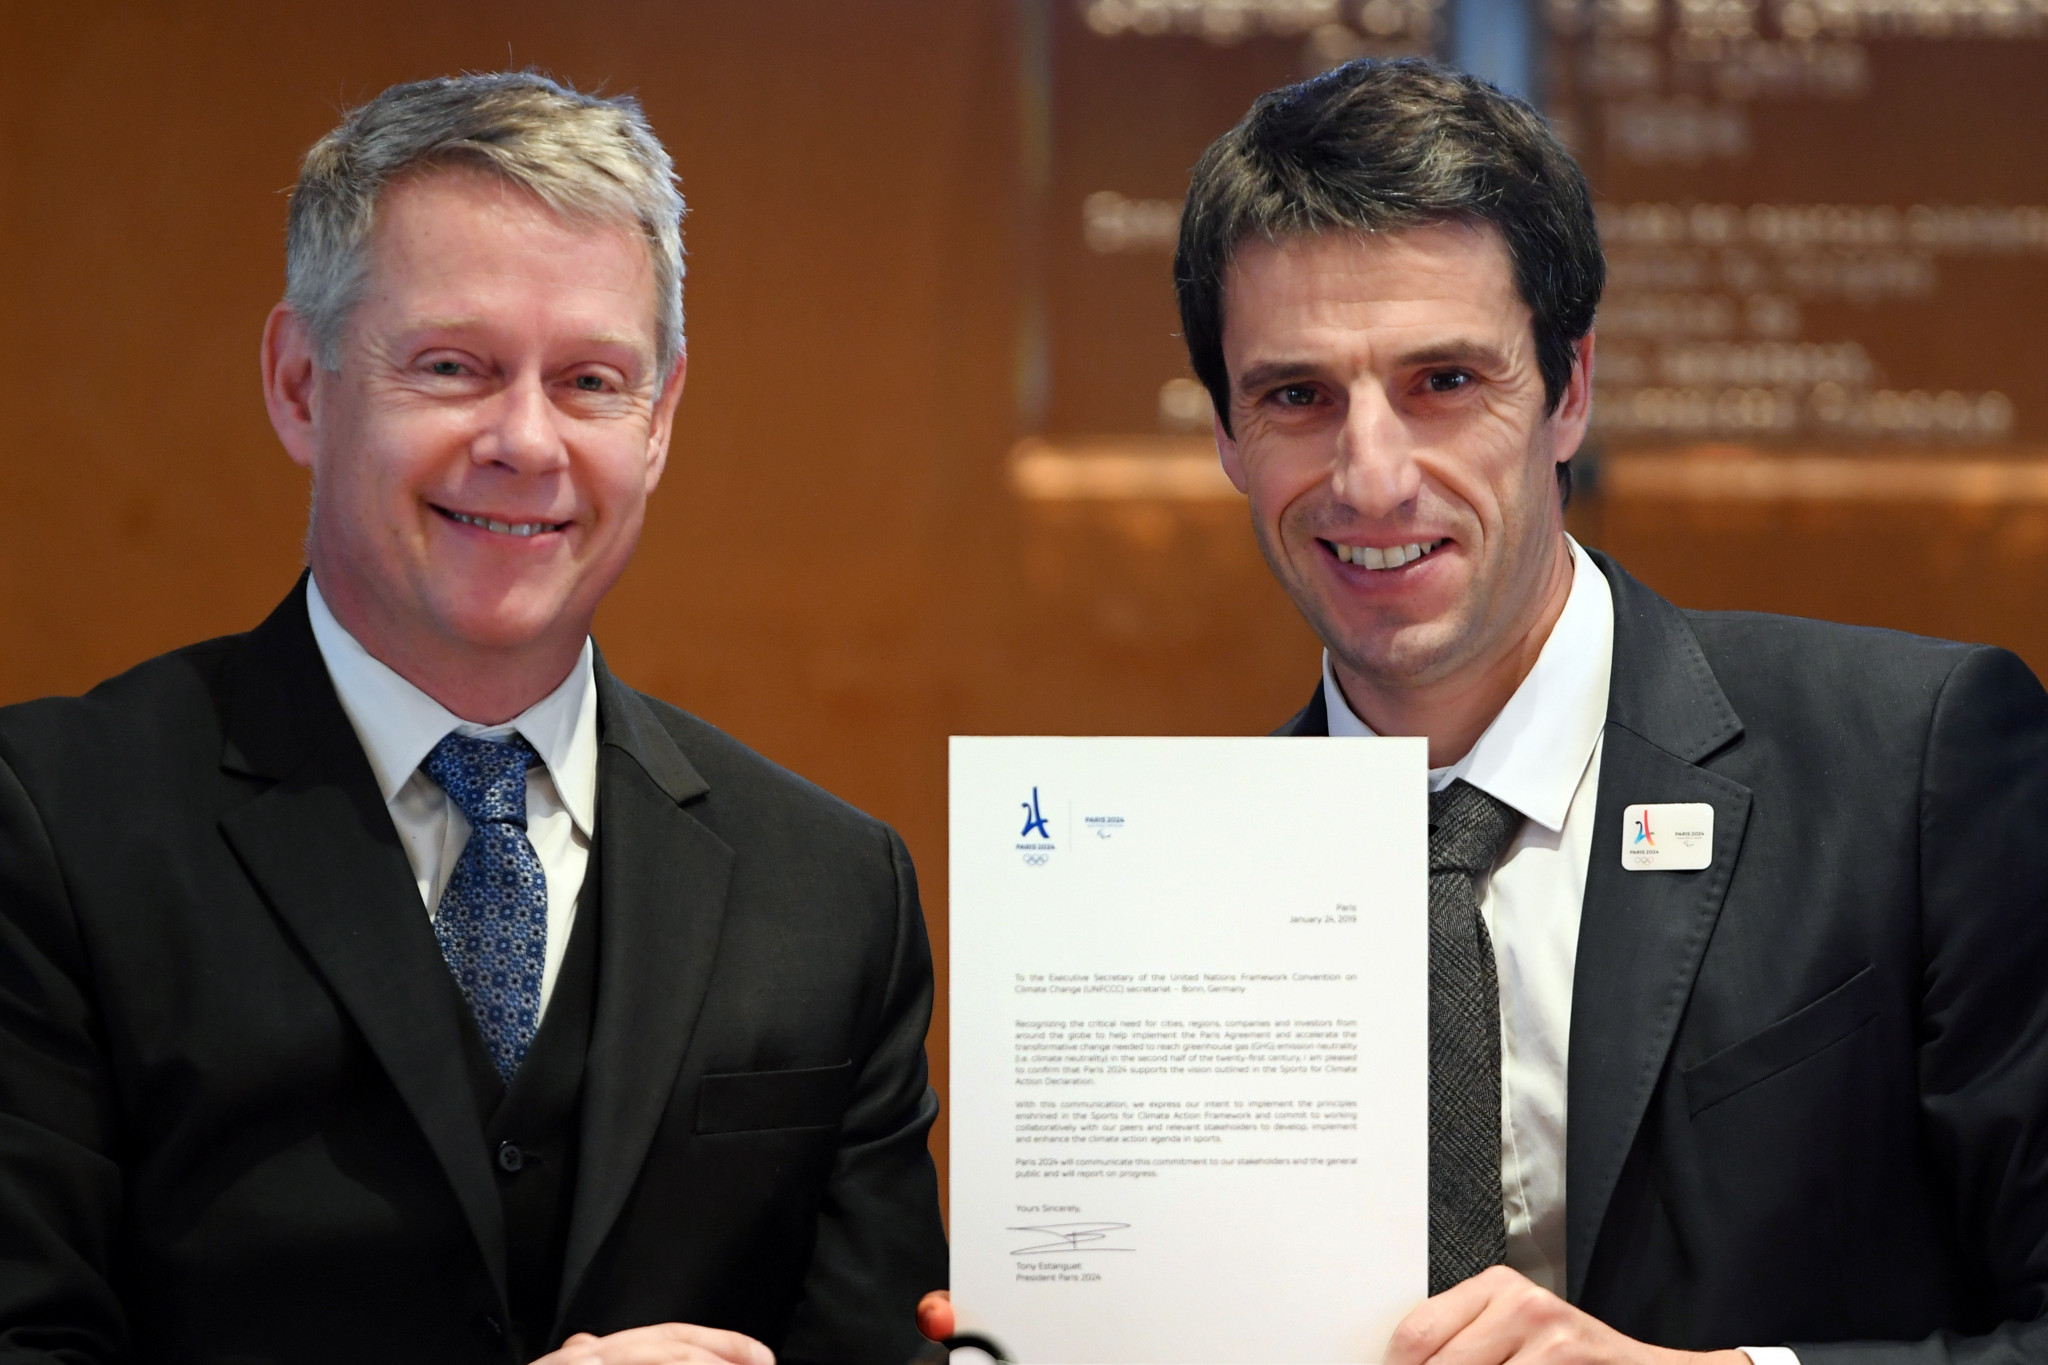 Paris 2024 President Tony Estanguet signed confirmed they would participate in a Sport for Climate Action initiative after meeting Niclas Svenningsen, manager of Global Climate Action ©Paris 2024